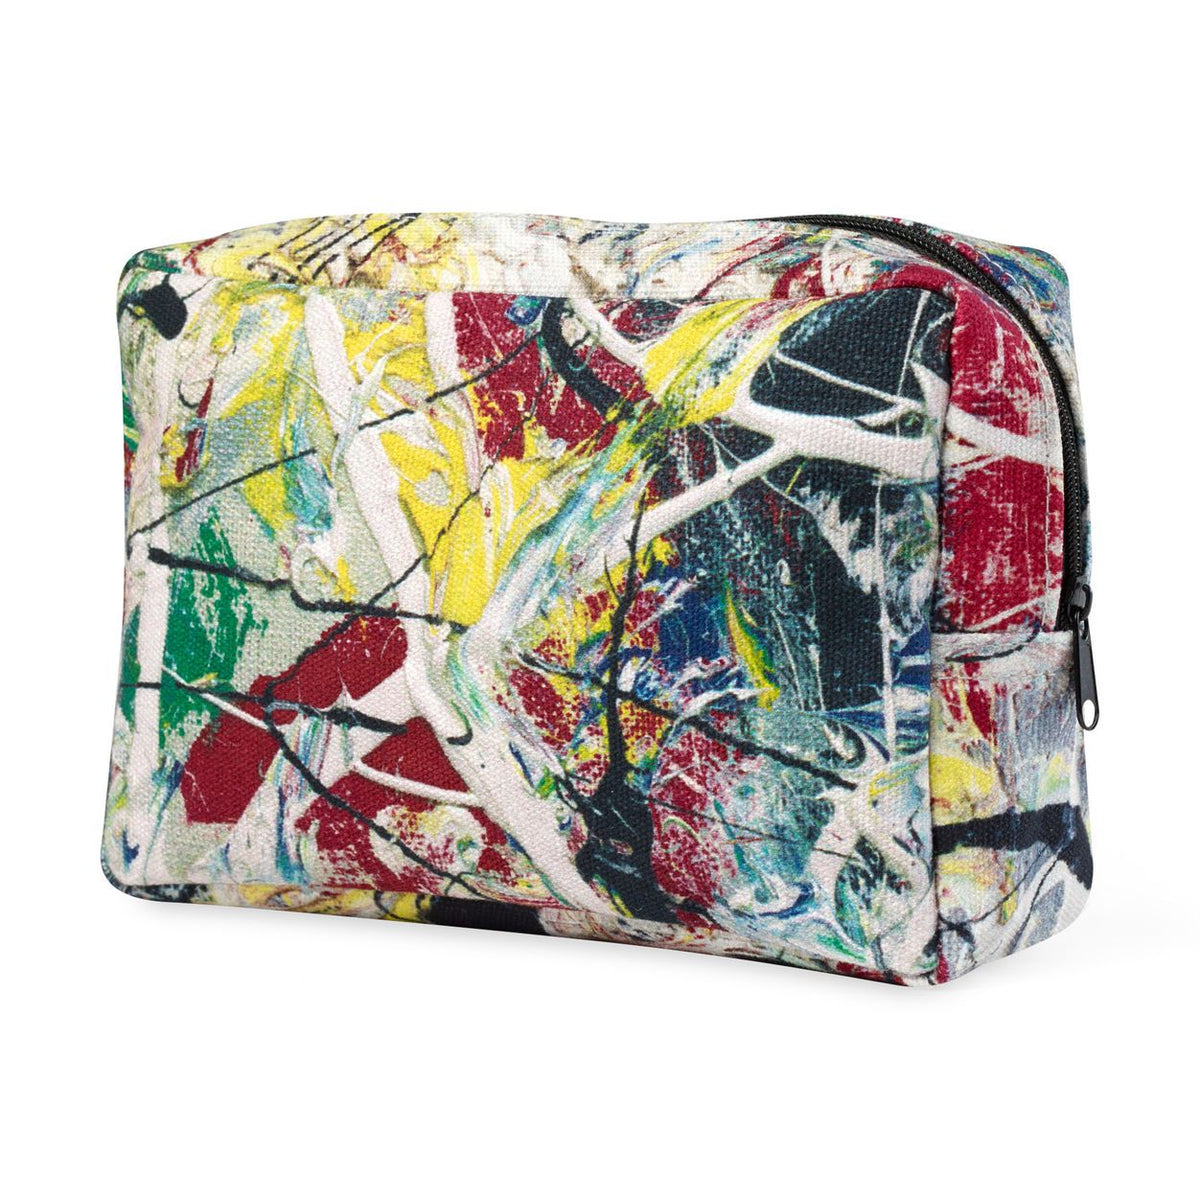 "Pollock ""White Light"" Pouch Stationary MoMA - der ZEITGEIST"